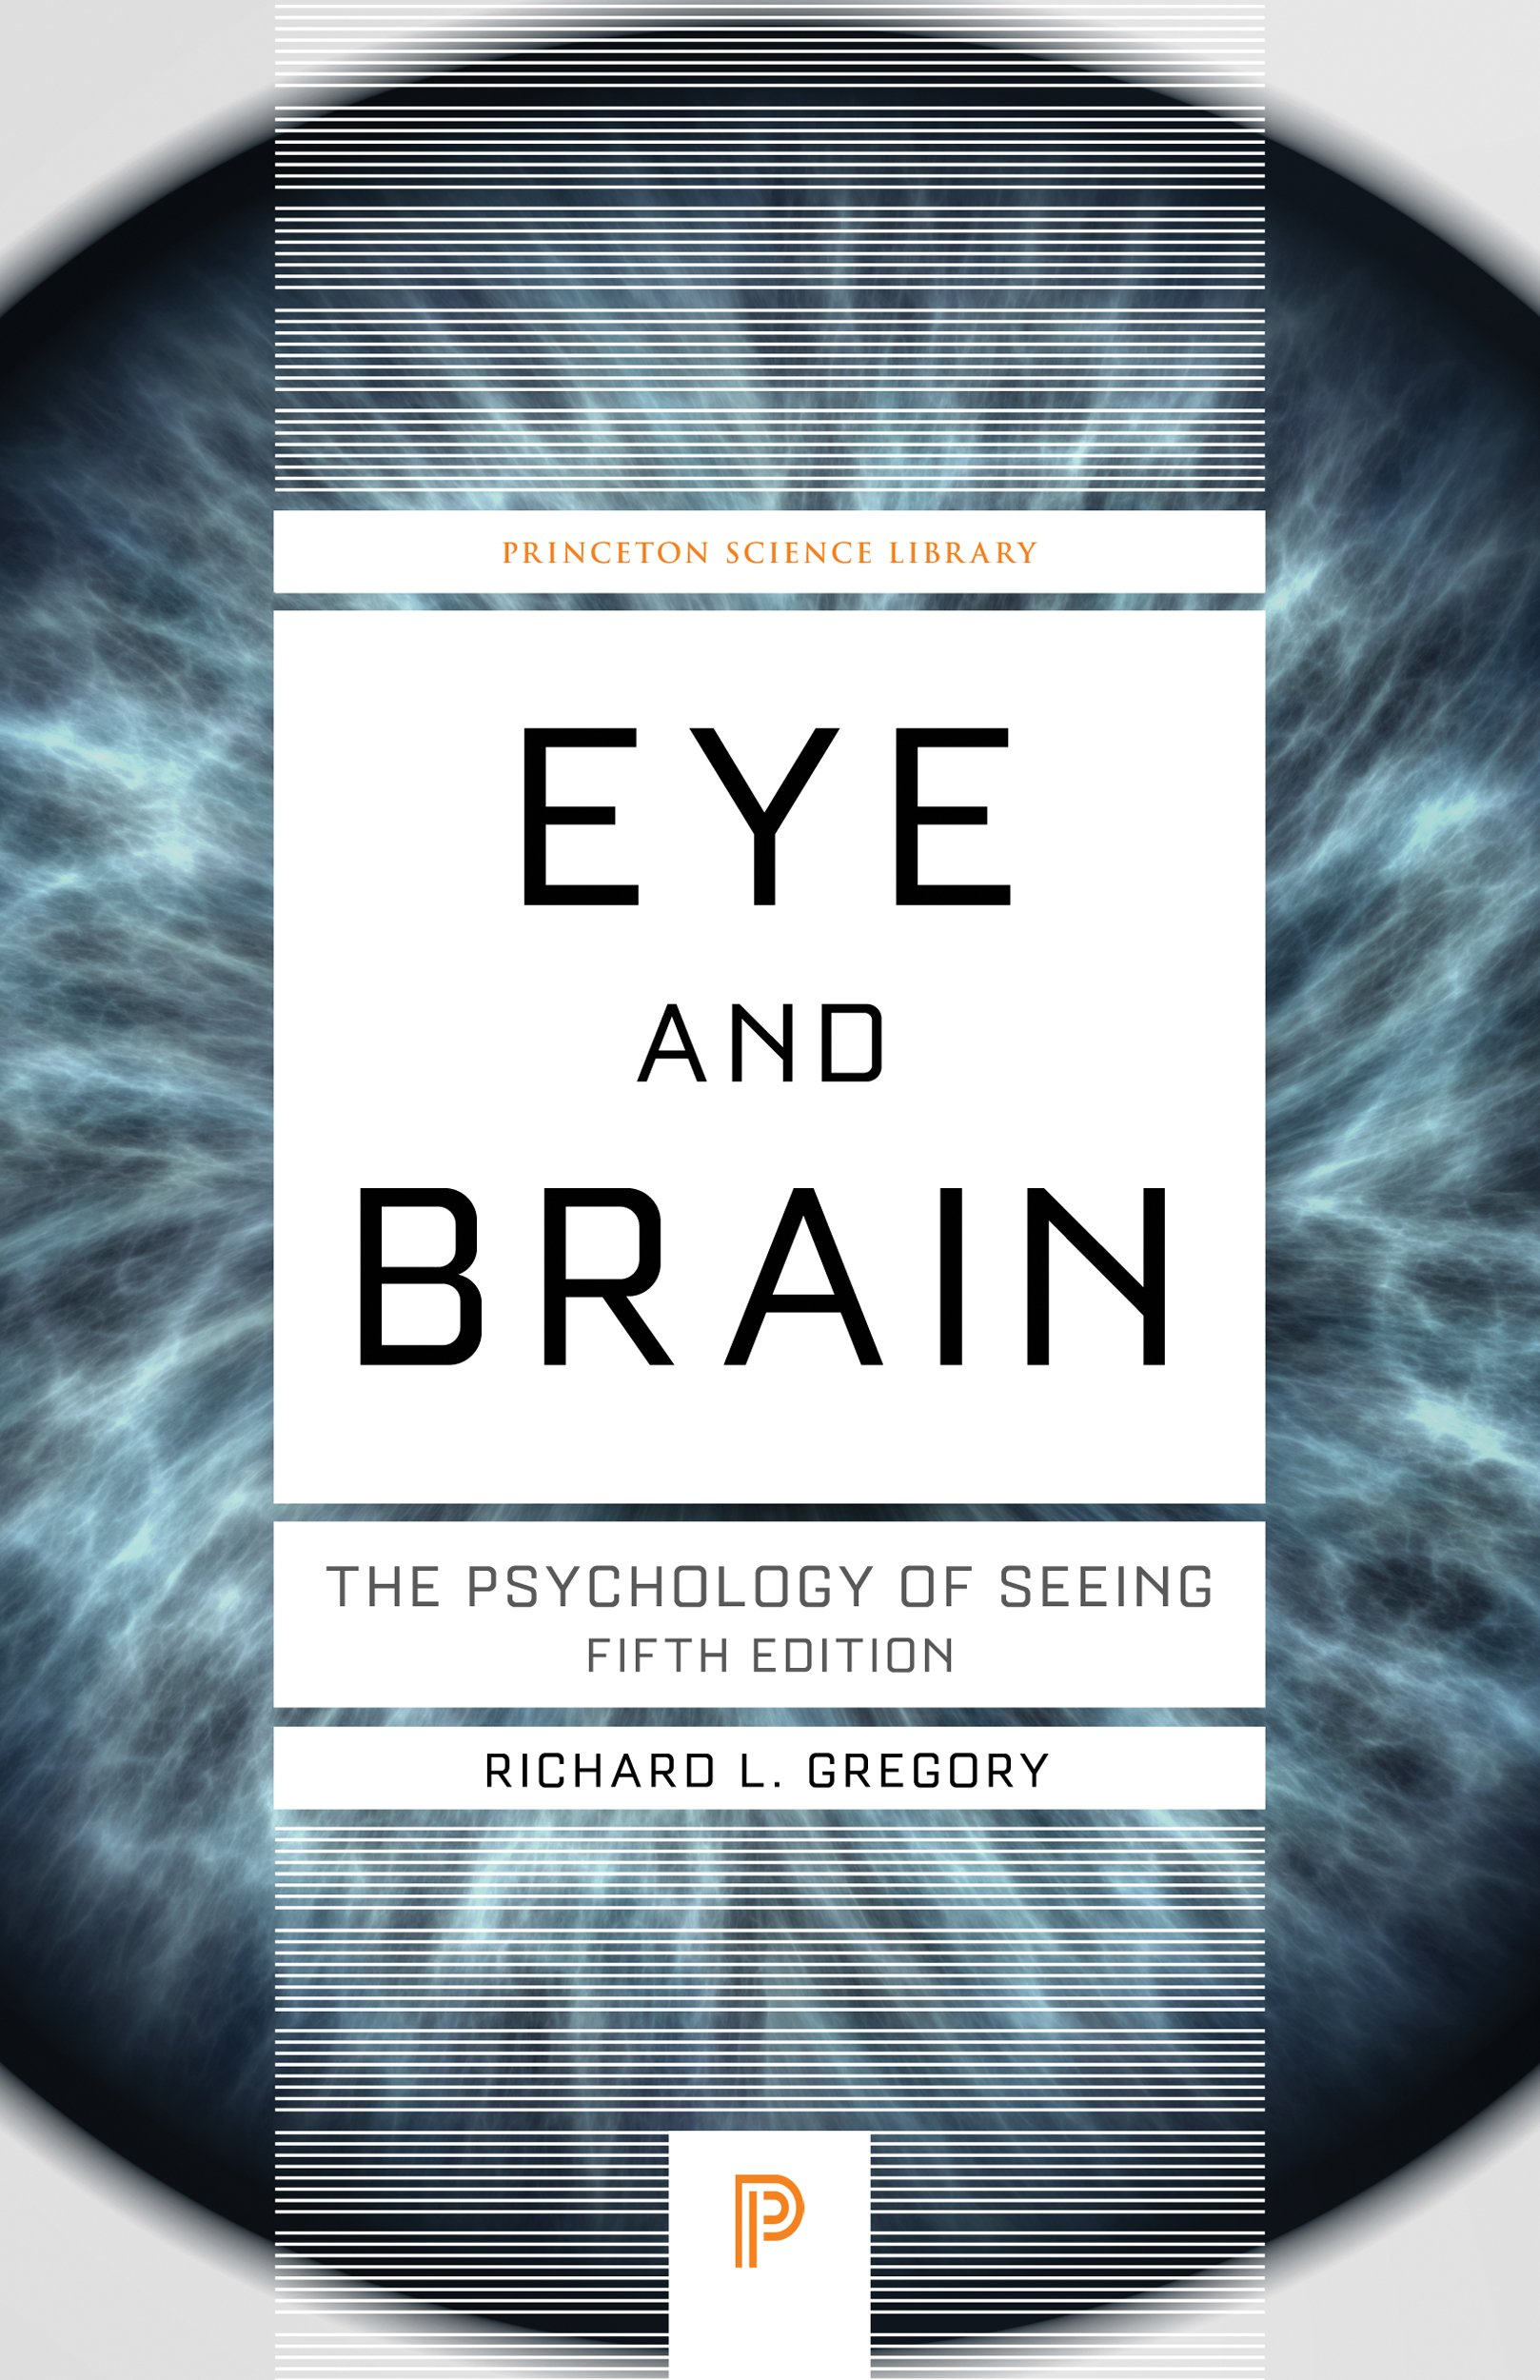 Eye and Brain: The Psychology of Seeing. Princeton Science Library